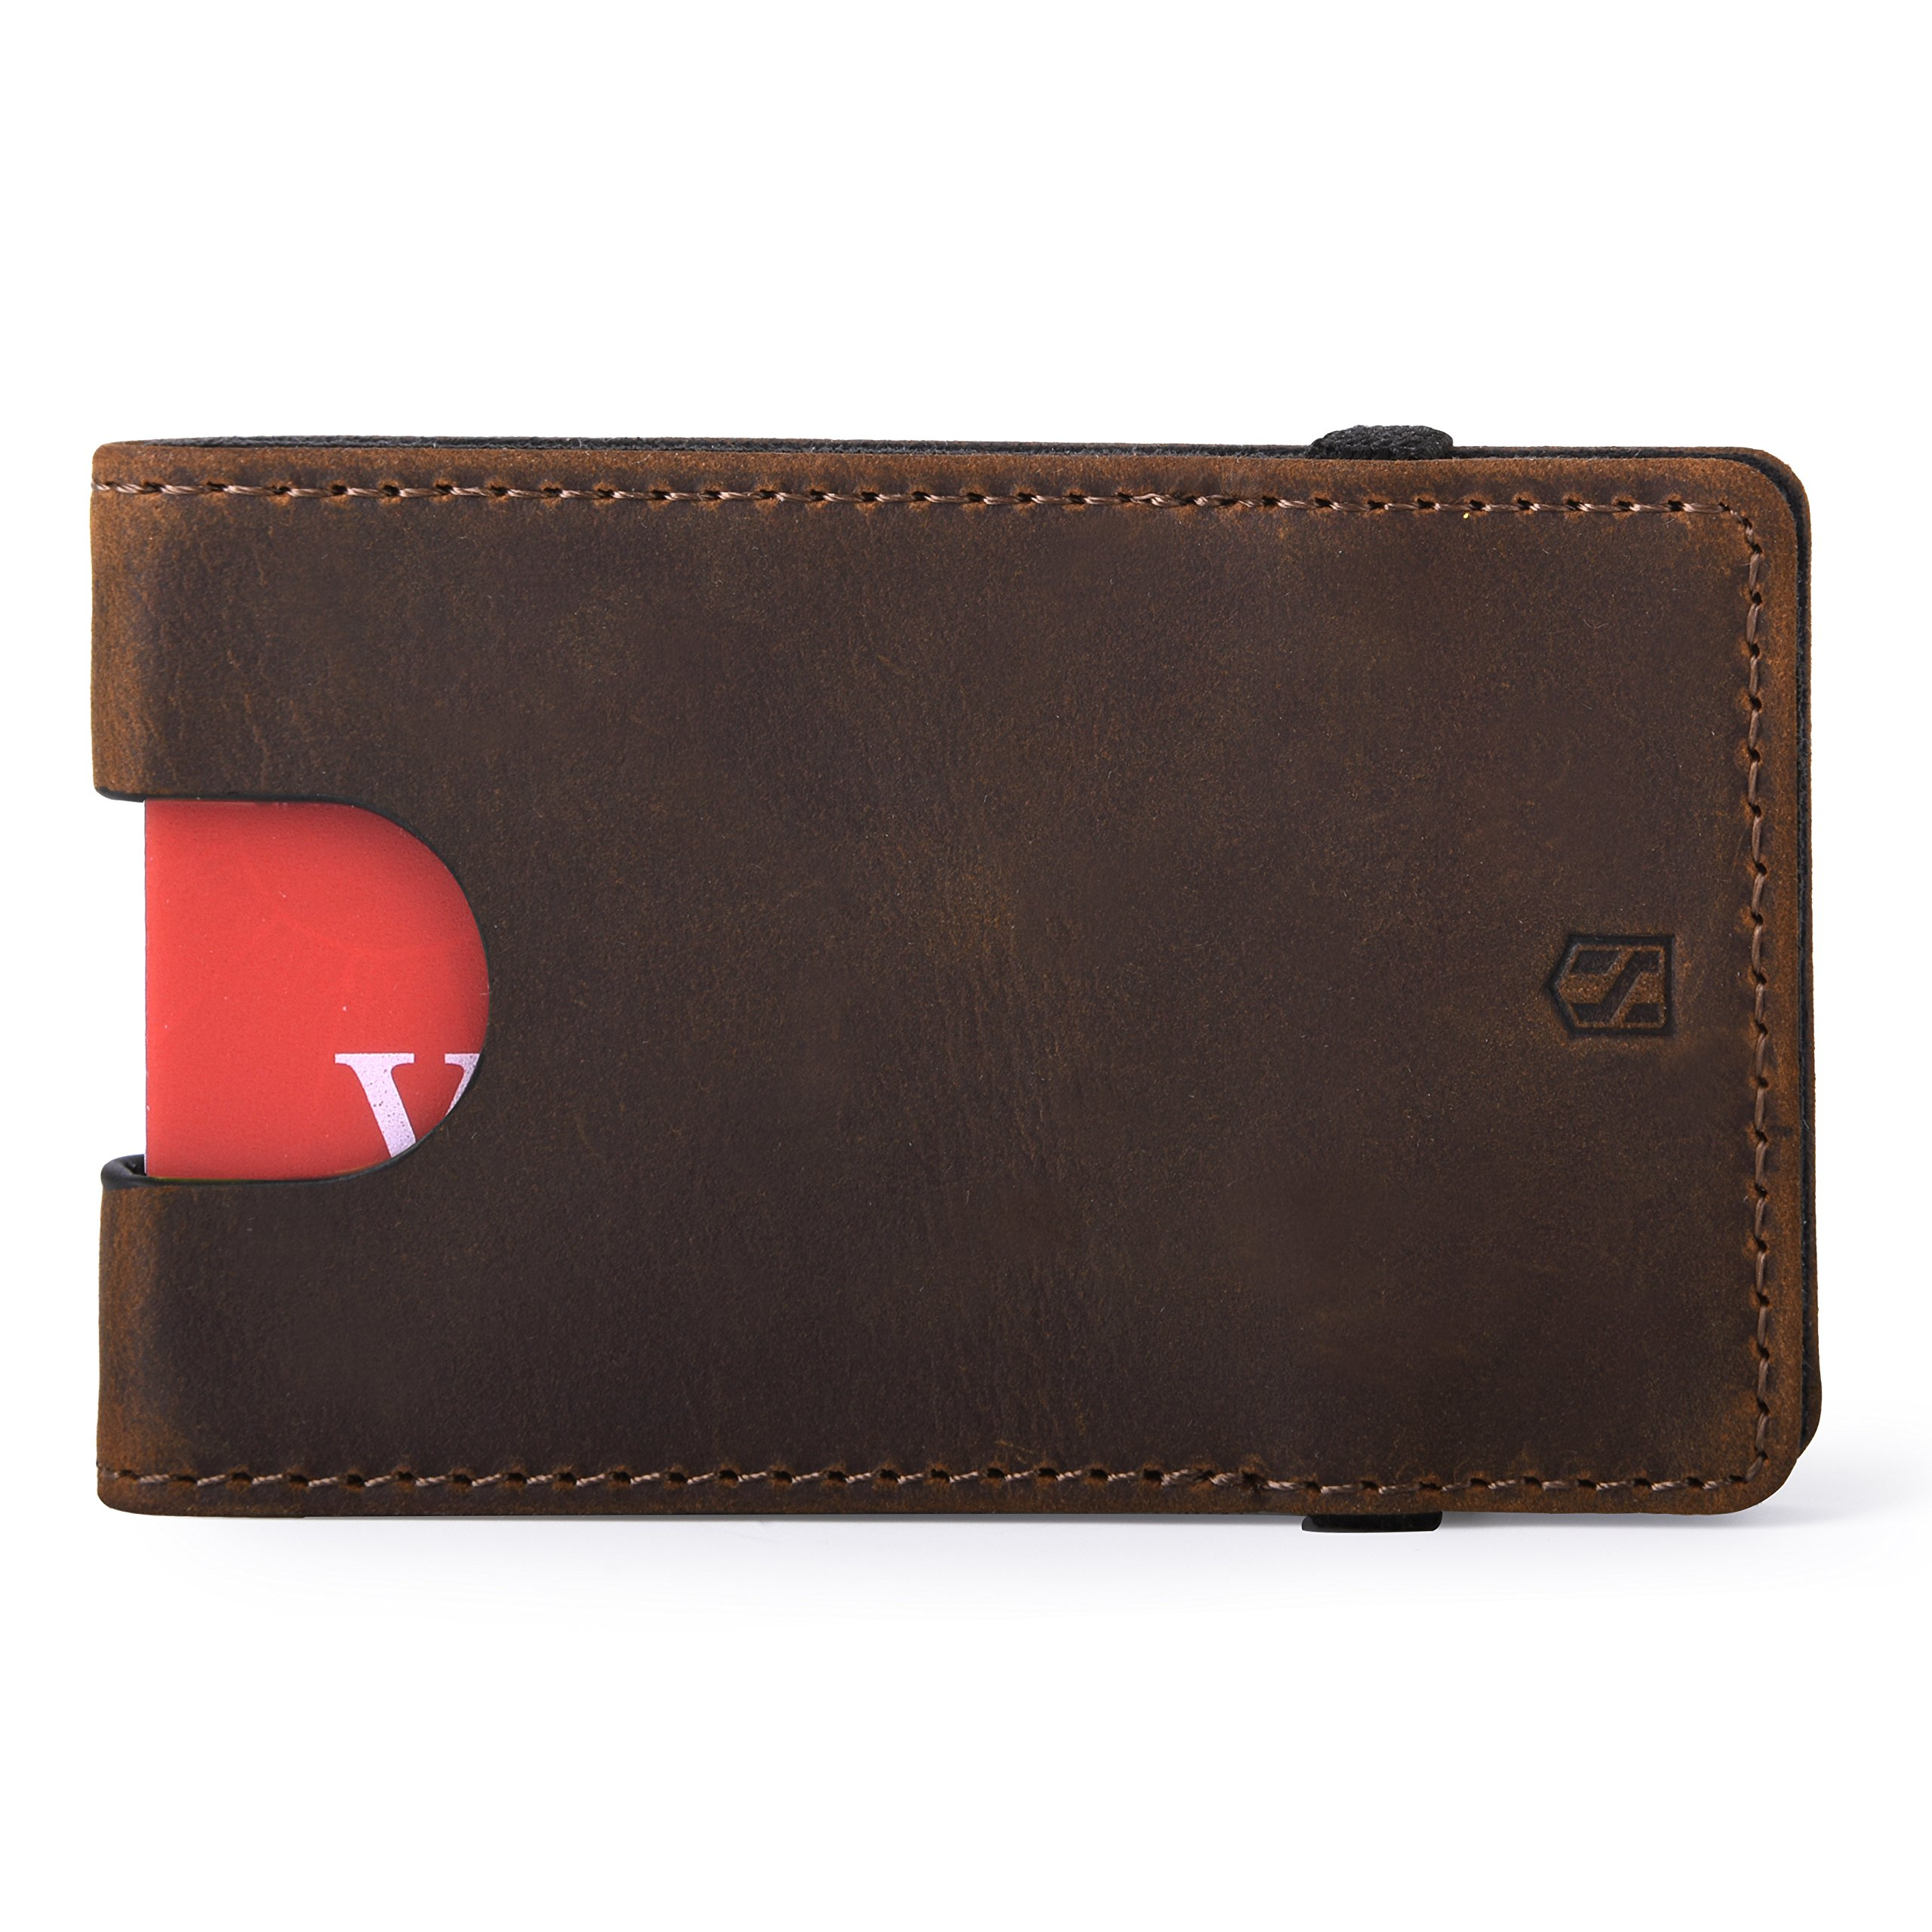 Slim Wallets for Men - Mens Wallet Card Holder - Minimalist Front Pocket Wallet with Elastic (Dark Brown [CSC9-DBCH ])